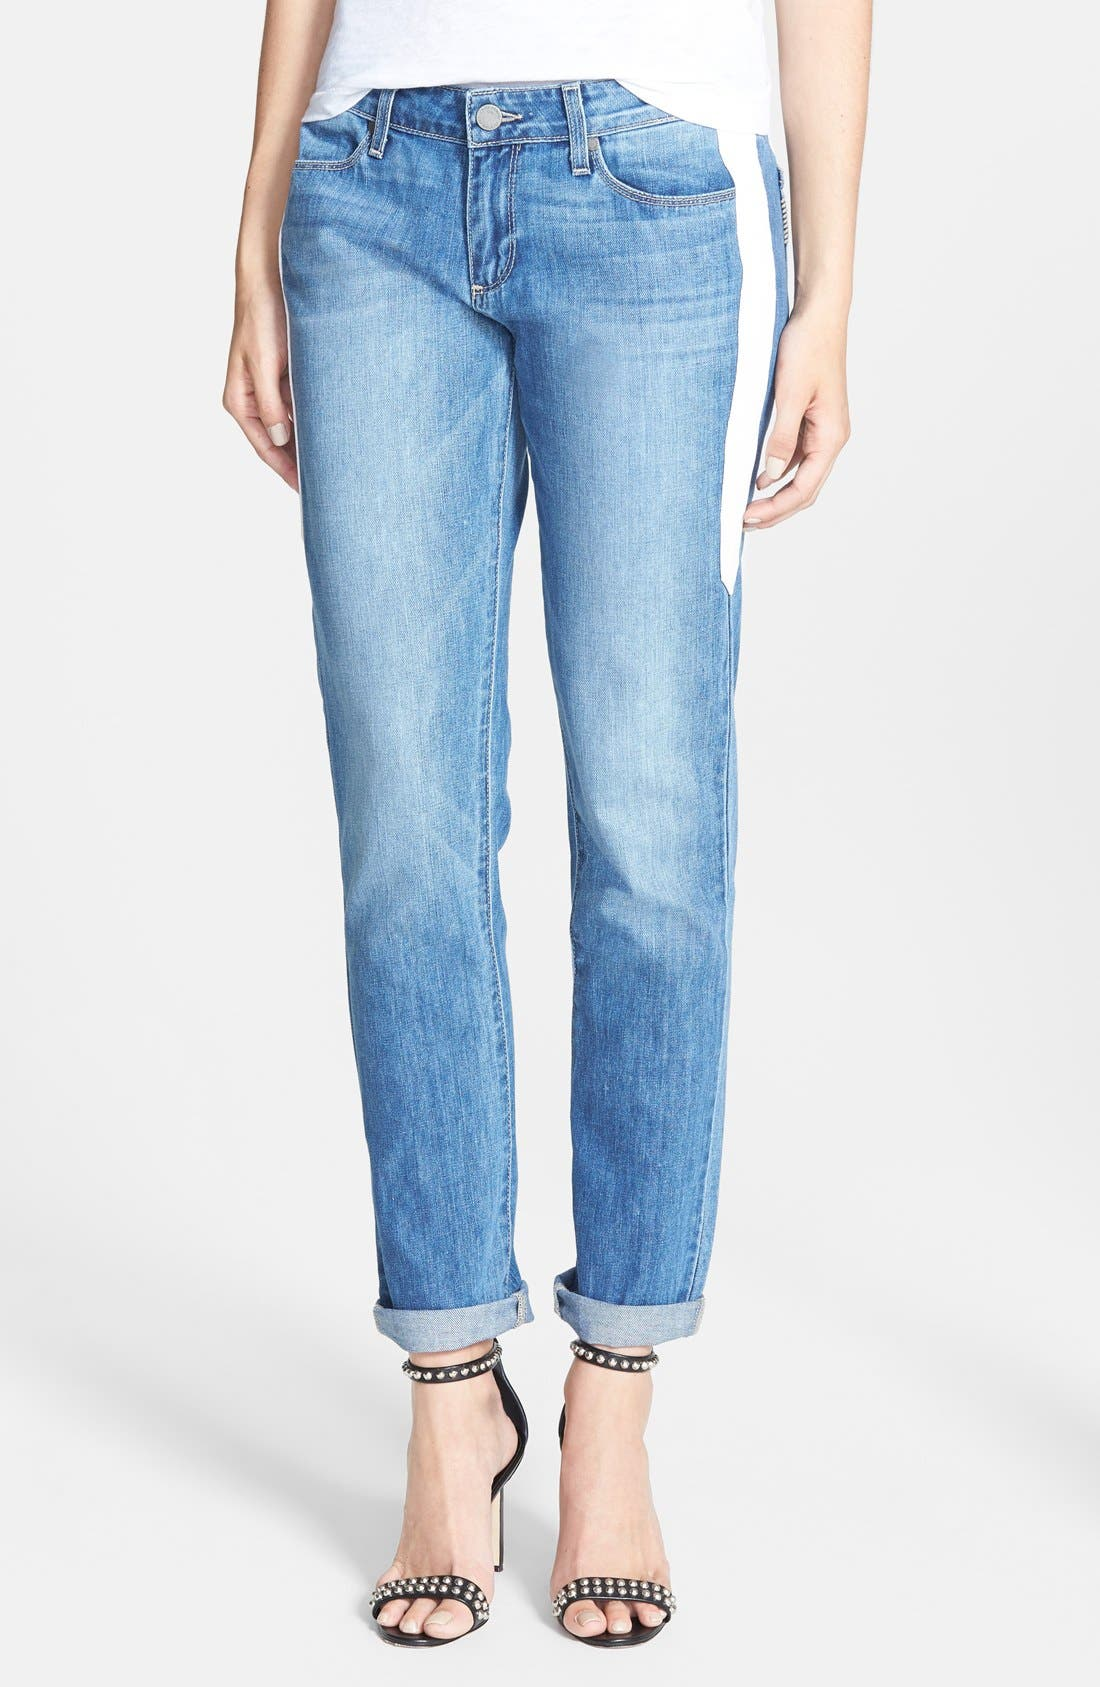 Alternate Image 1 Selected - Paige Denim 'Jimmy Jimmy' Leather Stripe Skinny Boyfriend Jeans (Indigo Dart)